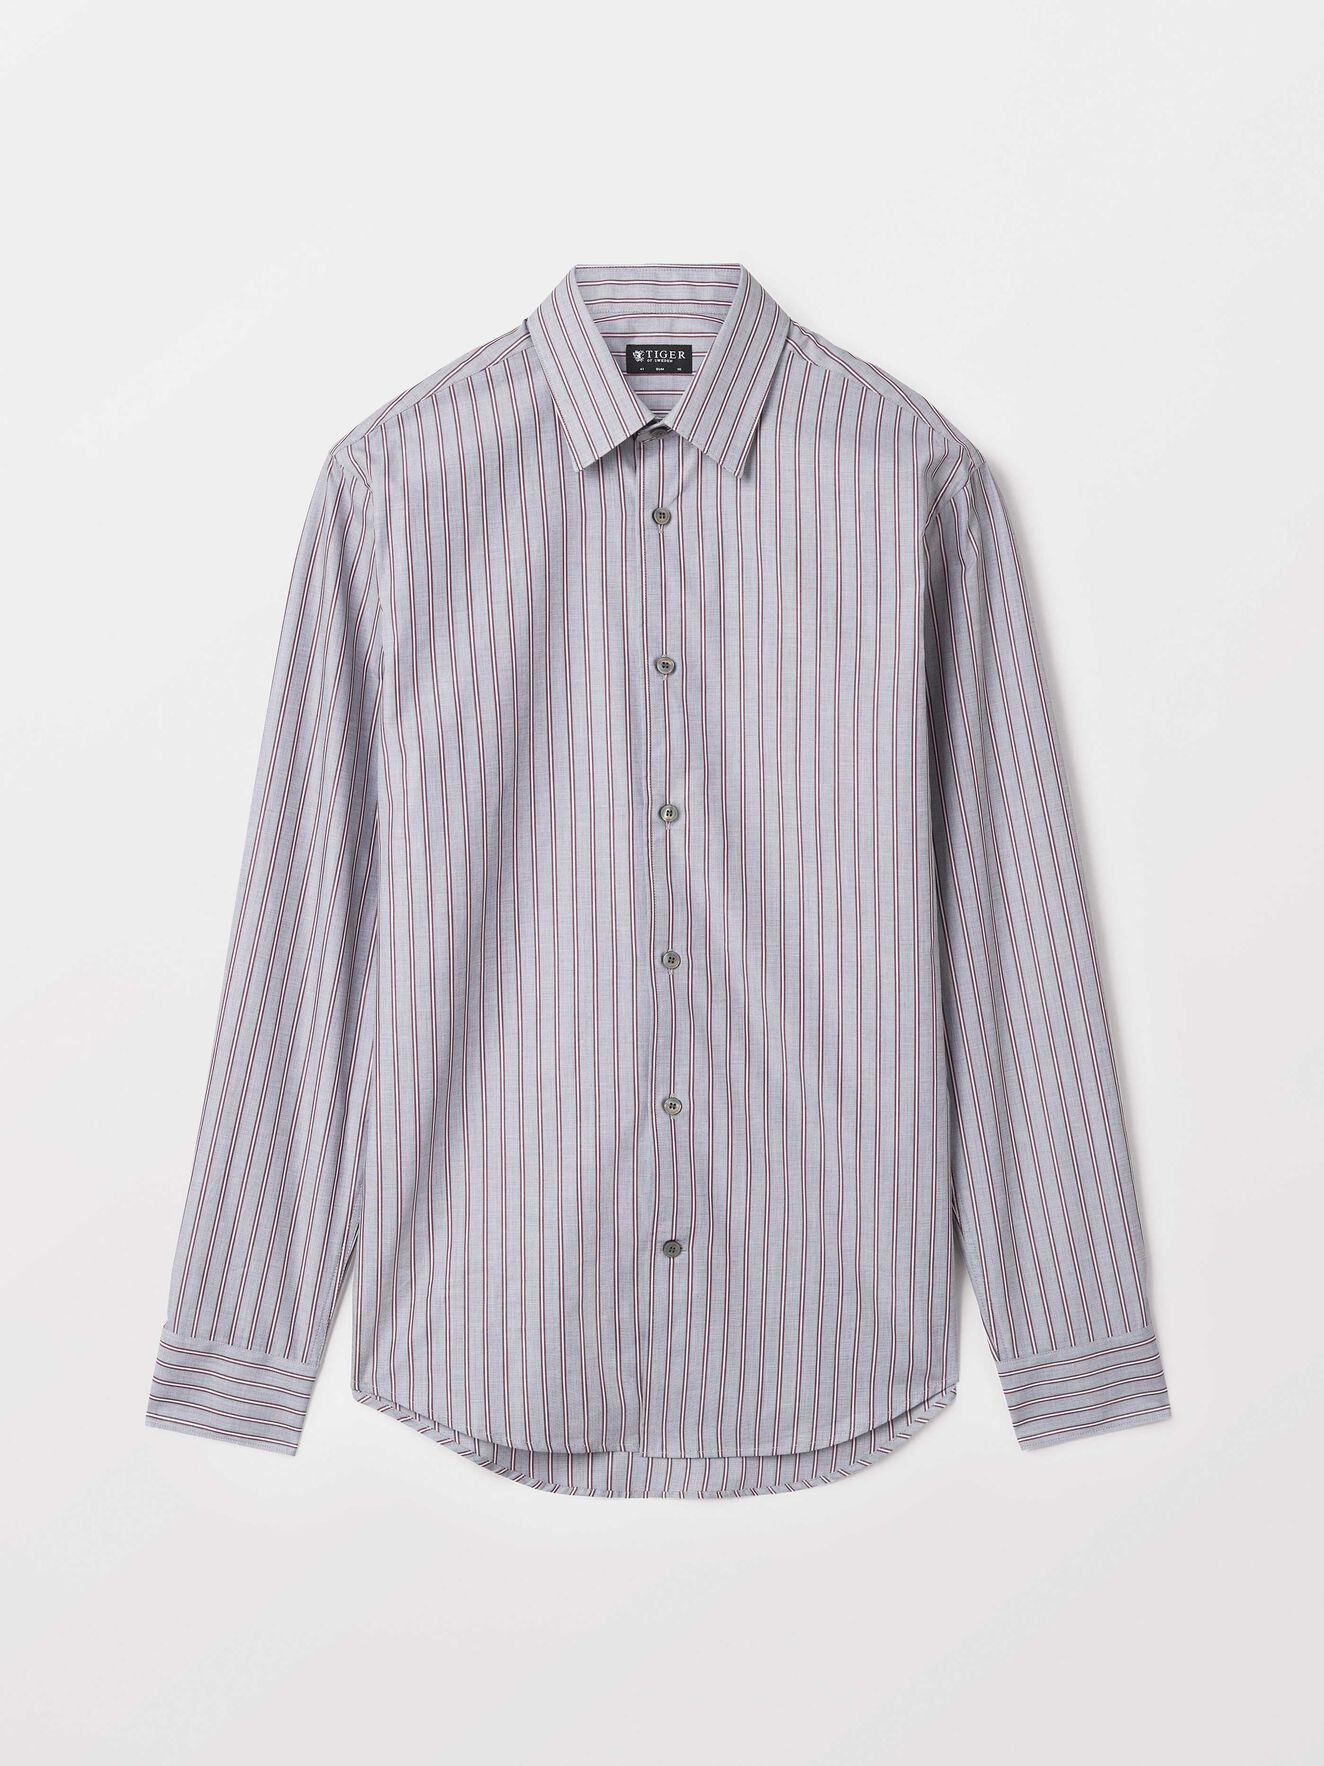 Farrell Shirt in Black from Tiger of Sweden